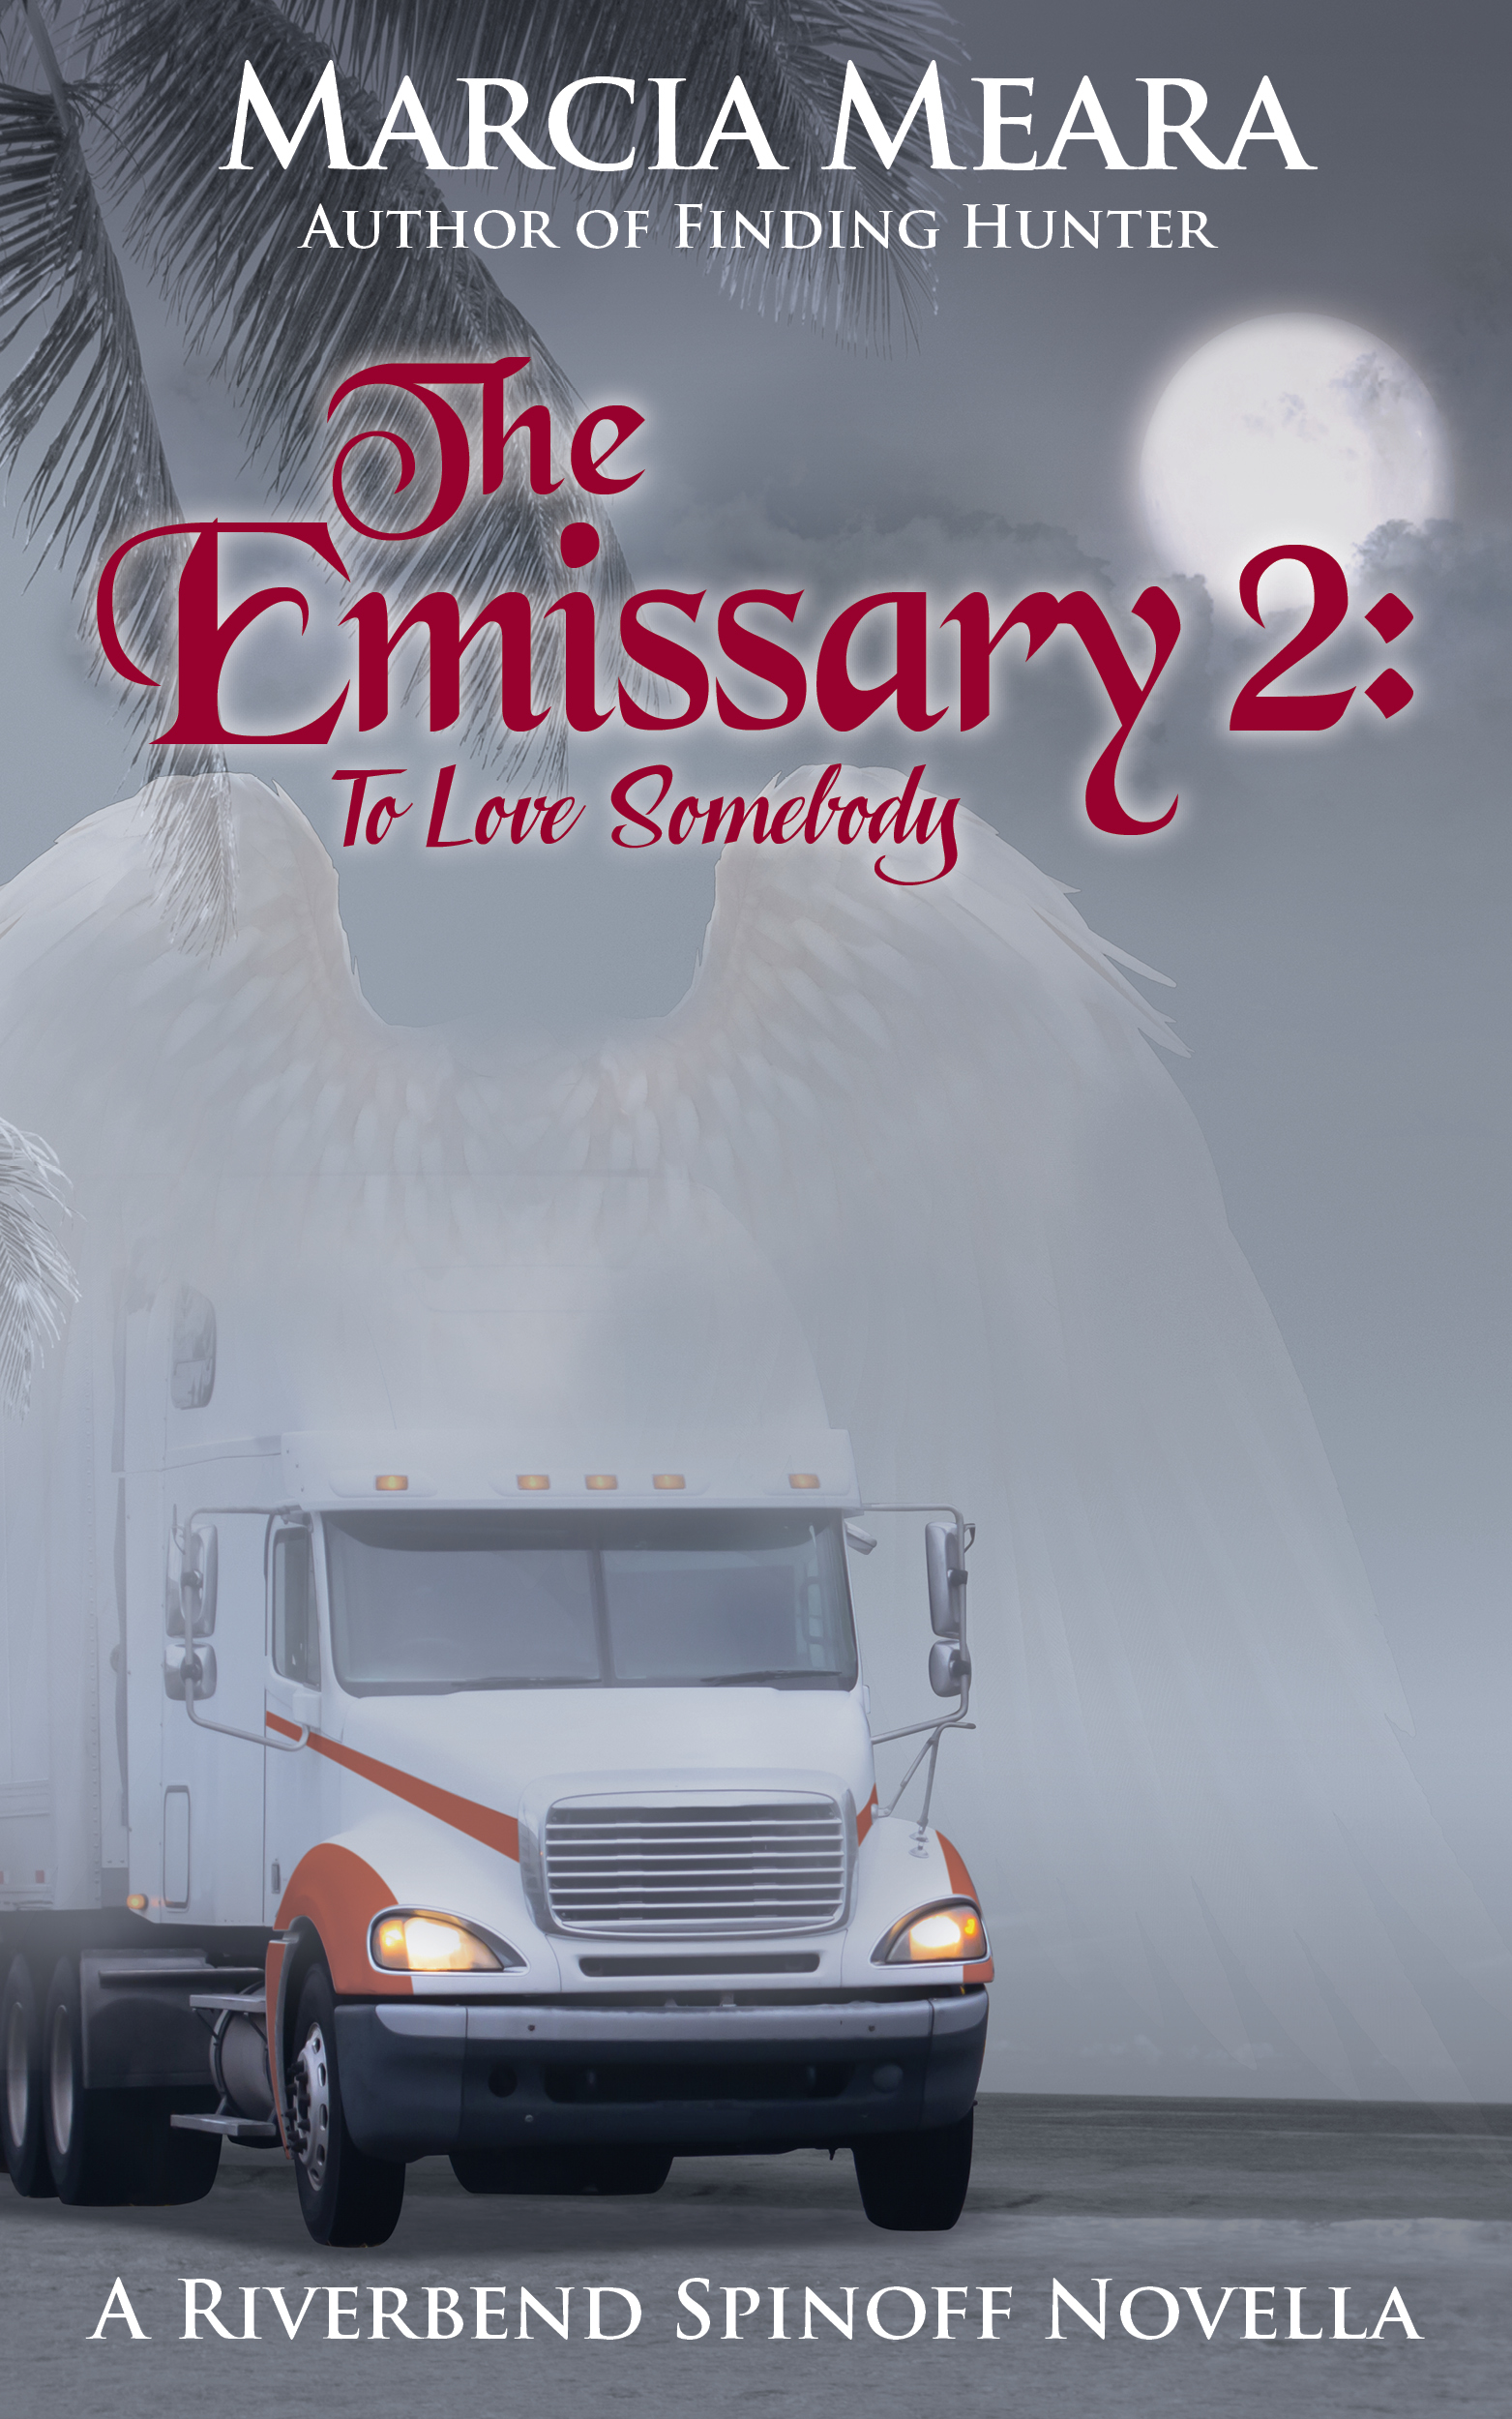 Corrected The Emissary 2_kindle cover_2